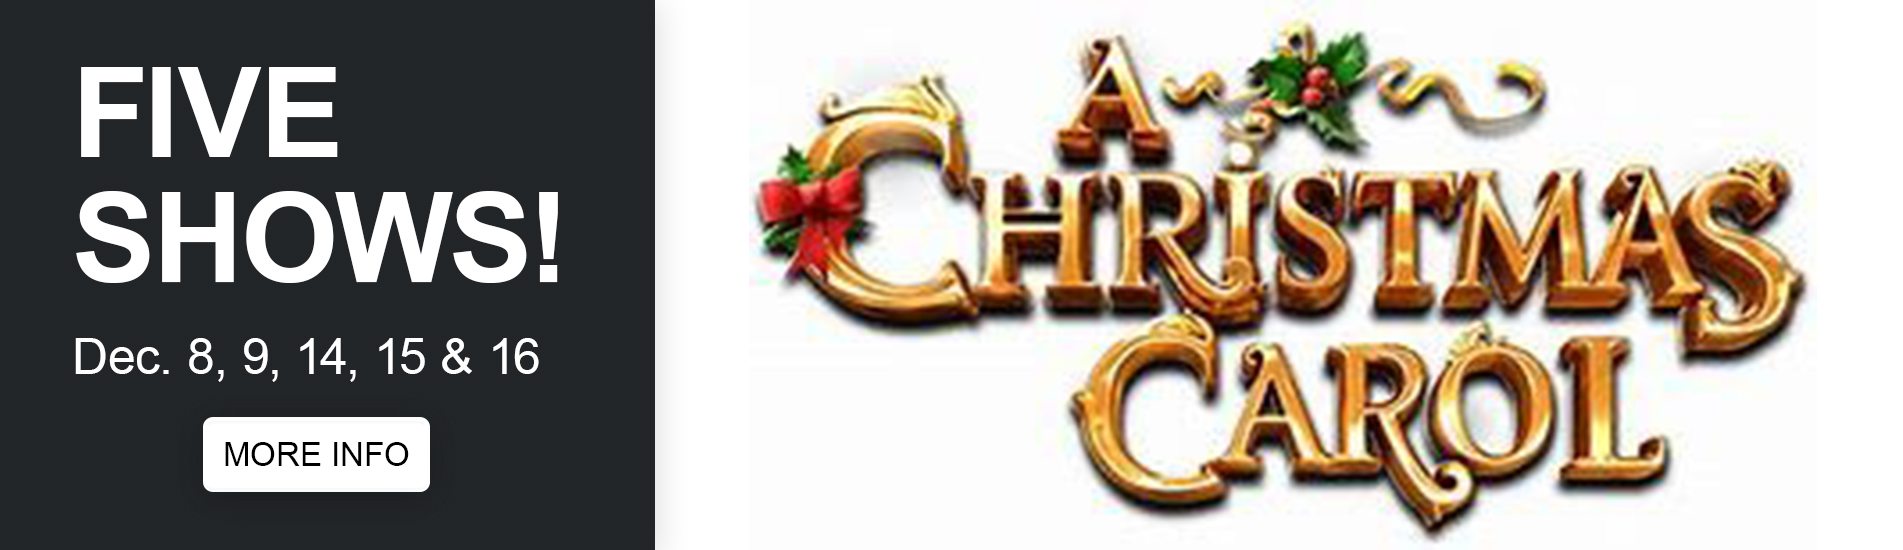 A Christmas Carol - Event - Five shows on December 8th, 9th, 14th, 15th, and 16th - Click for more info.